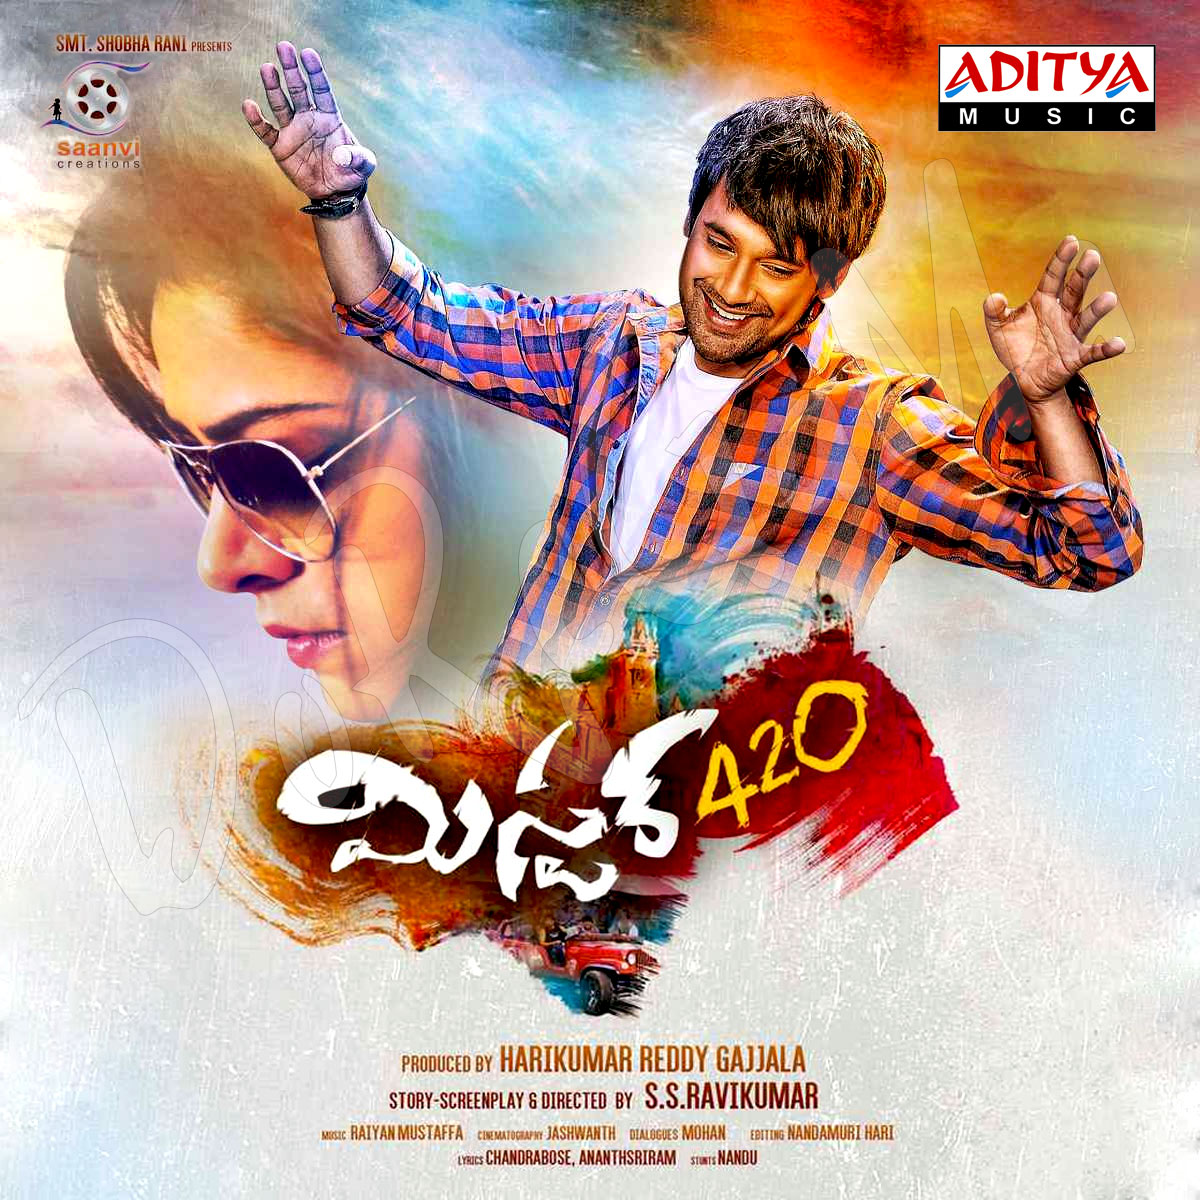 Mister-420-Telugu-Movie-Original-CD-FRont-Cover-Poster-Wallpaper-HD